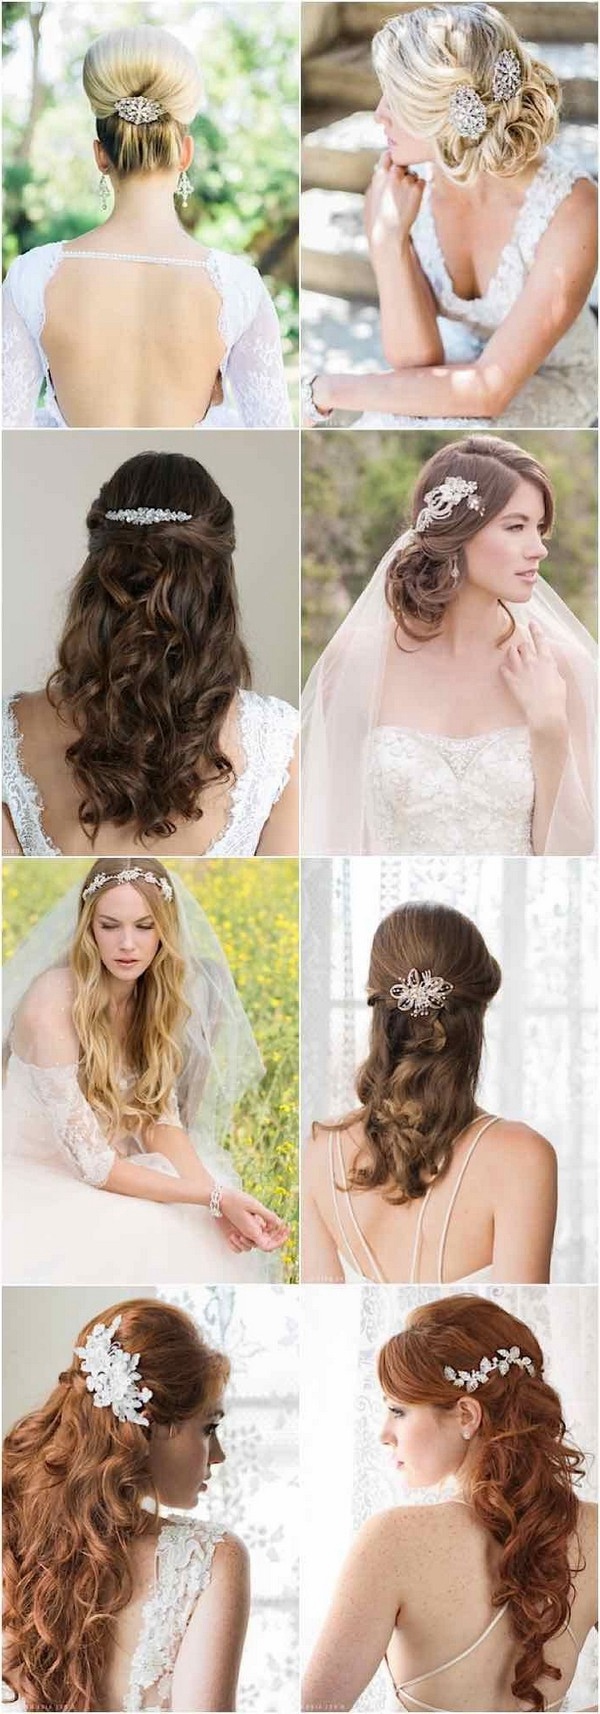 Wedding Hairstyles With Gorgeous Accessories From Bel Aire